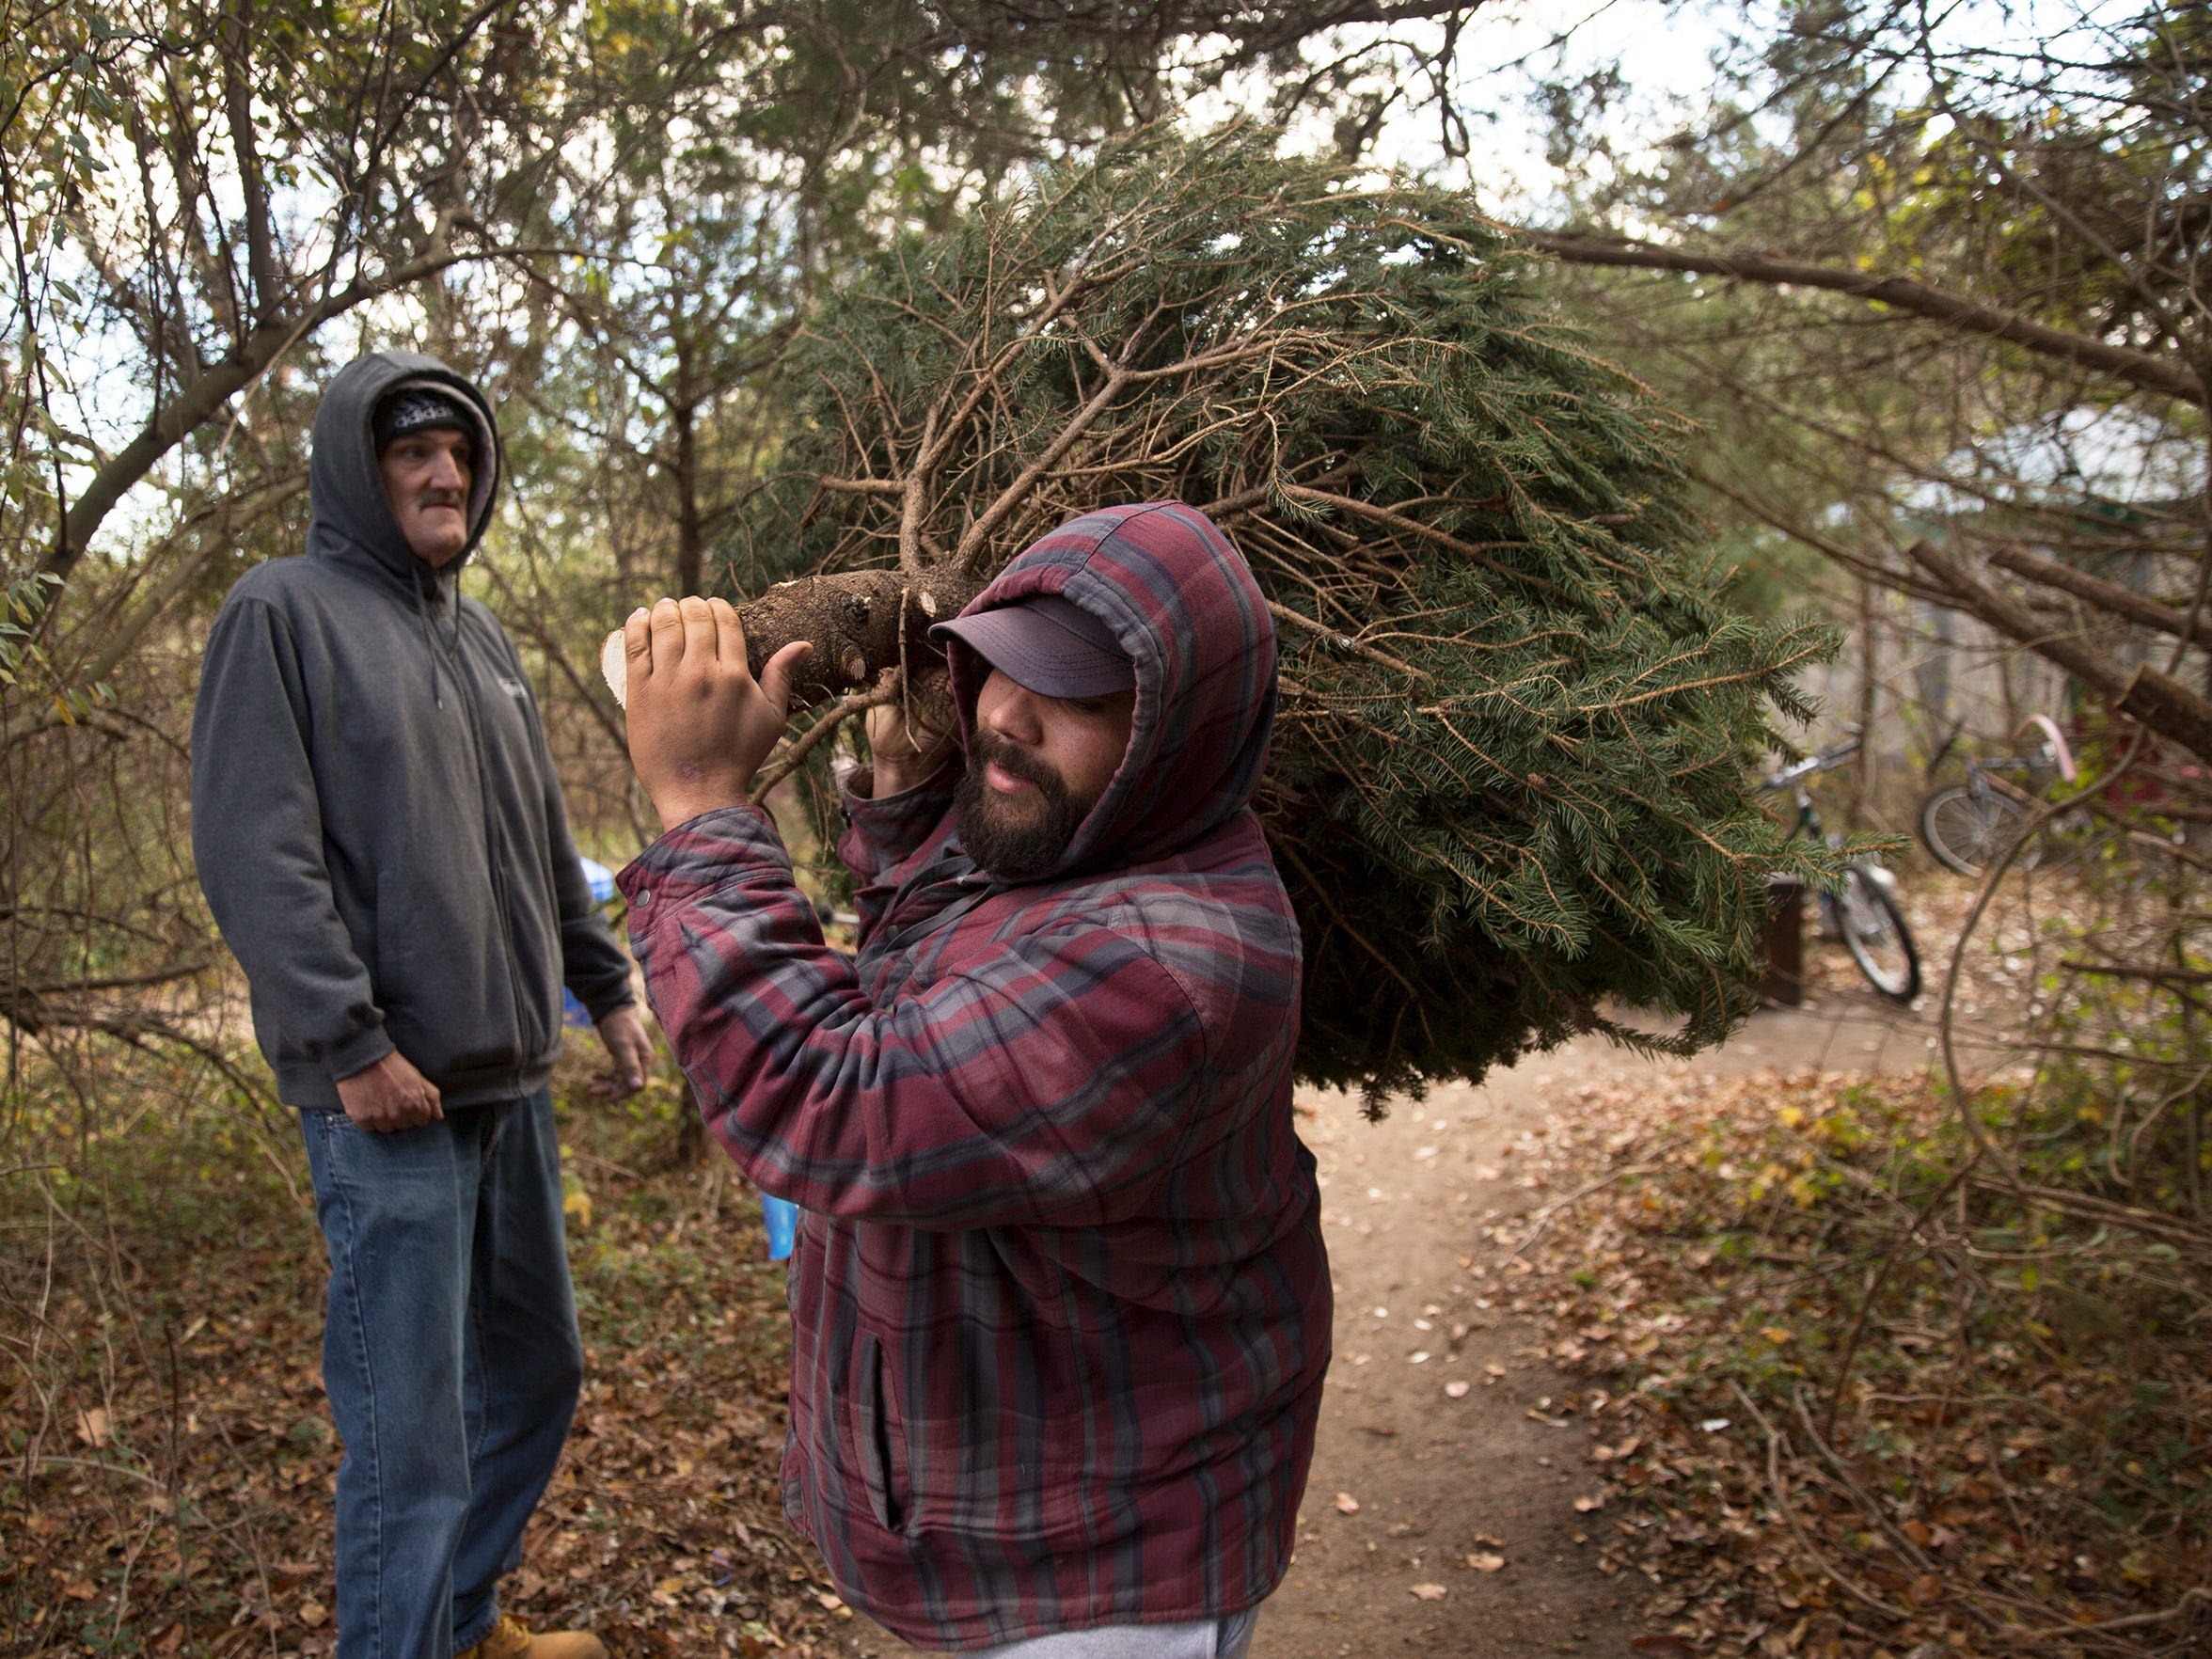 Camper Matt Alvarez carries in a Christmas tree that